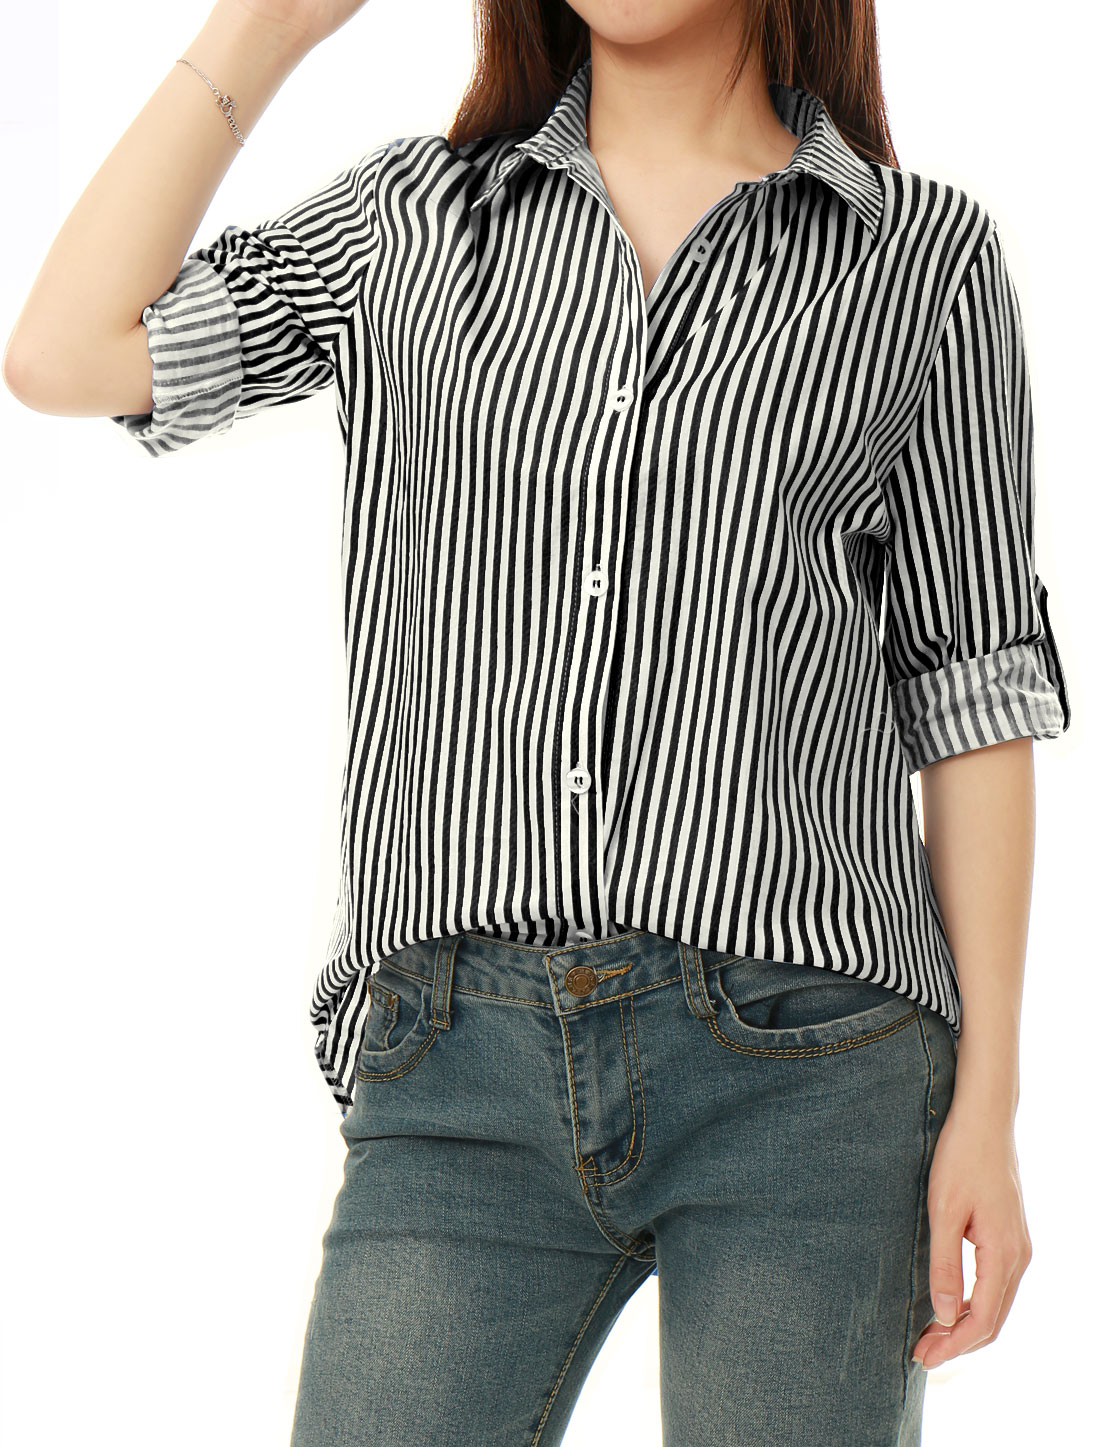 Women Striped High Low Hem Roll Up Sleeves Shirt Black White XS